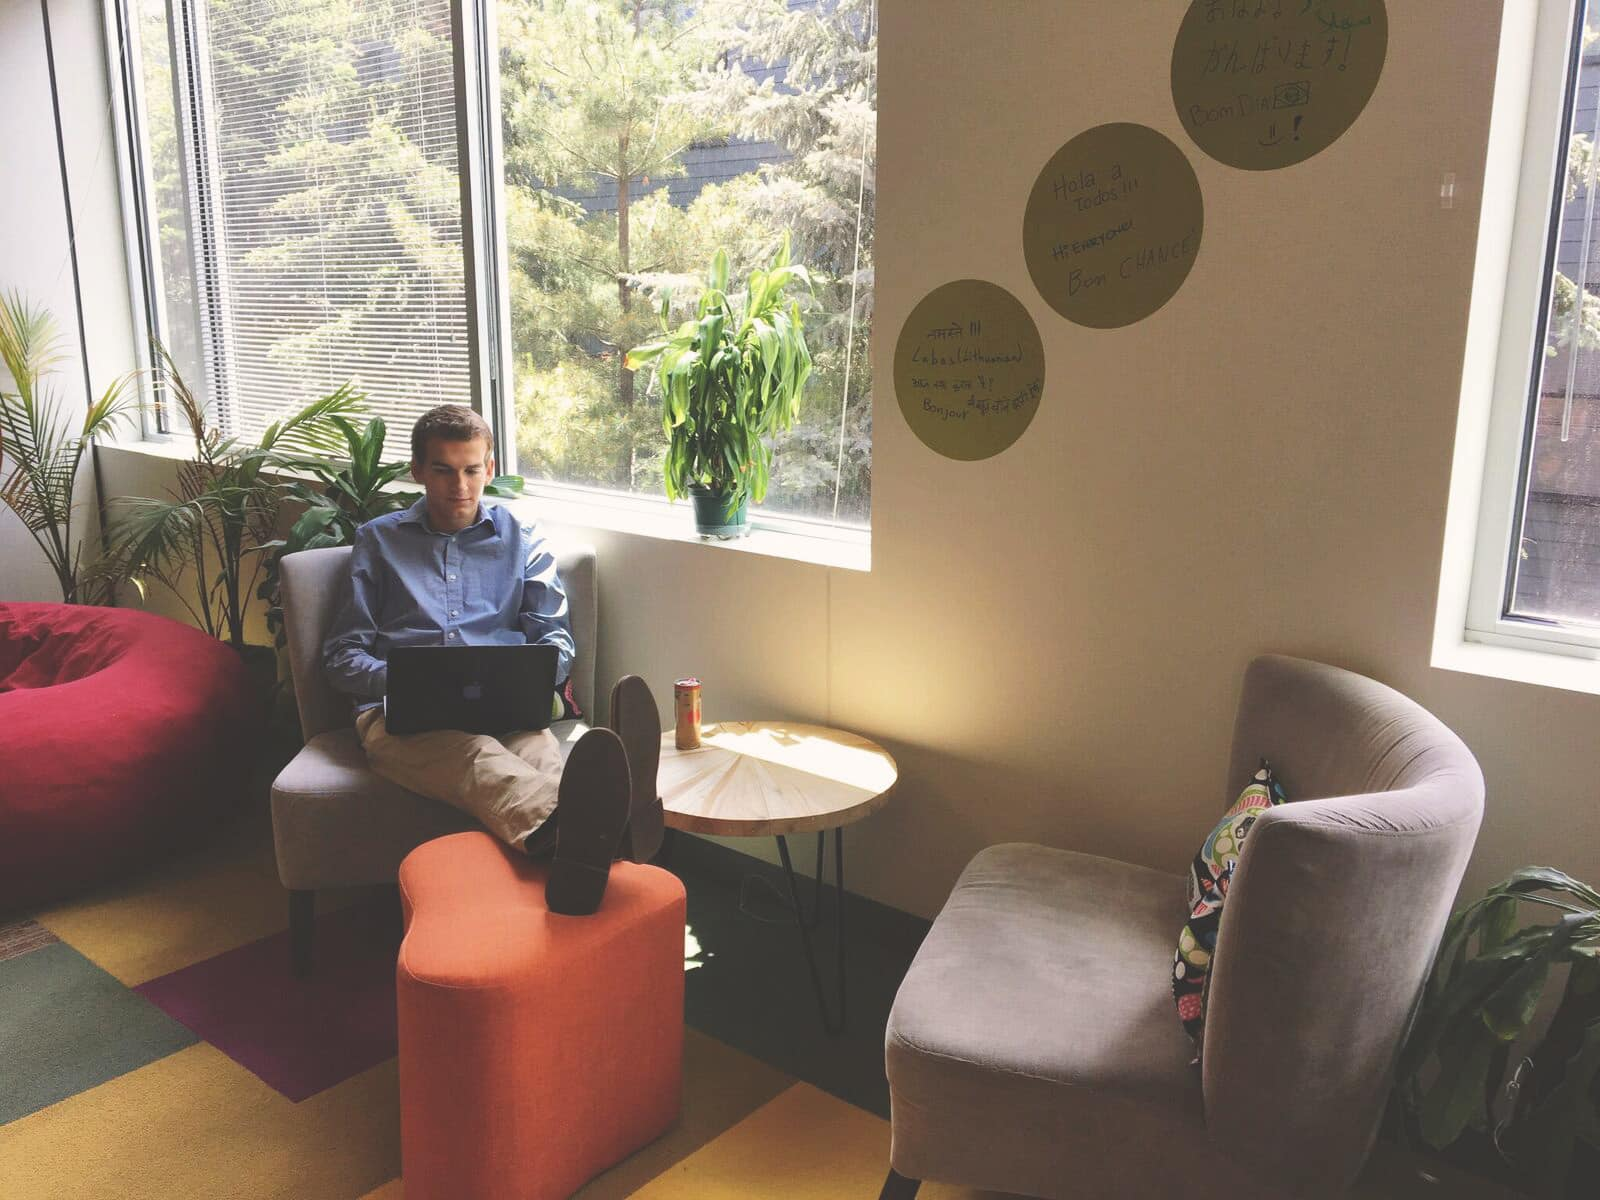 NGIN Workplace member enjoying the views and soaking up some sun in a relaxed atmosphere at NGIN Workplace